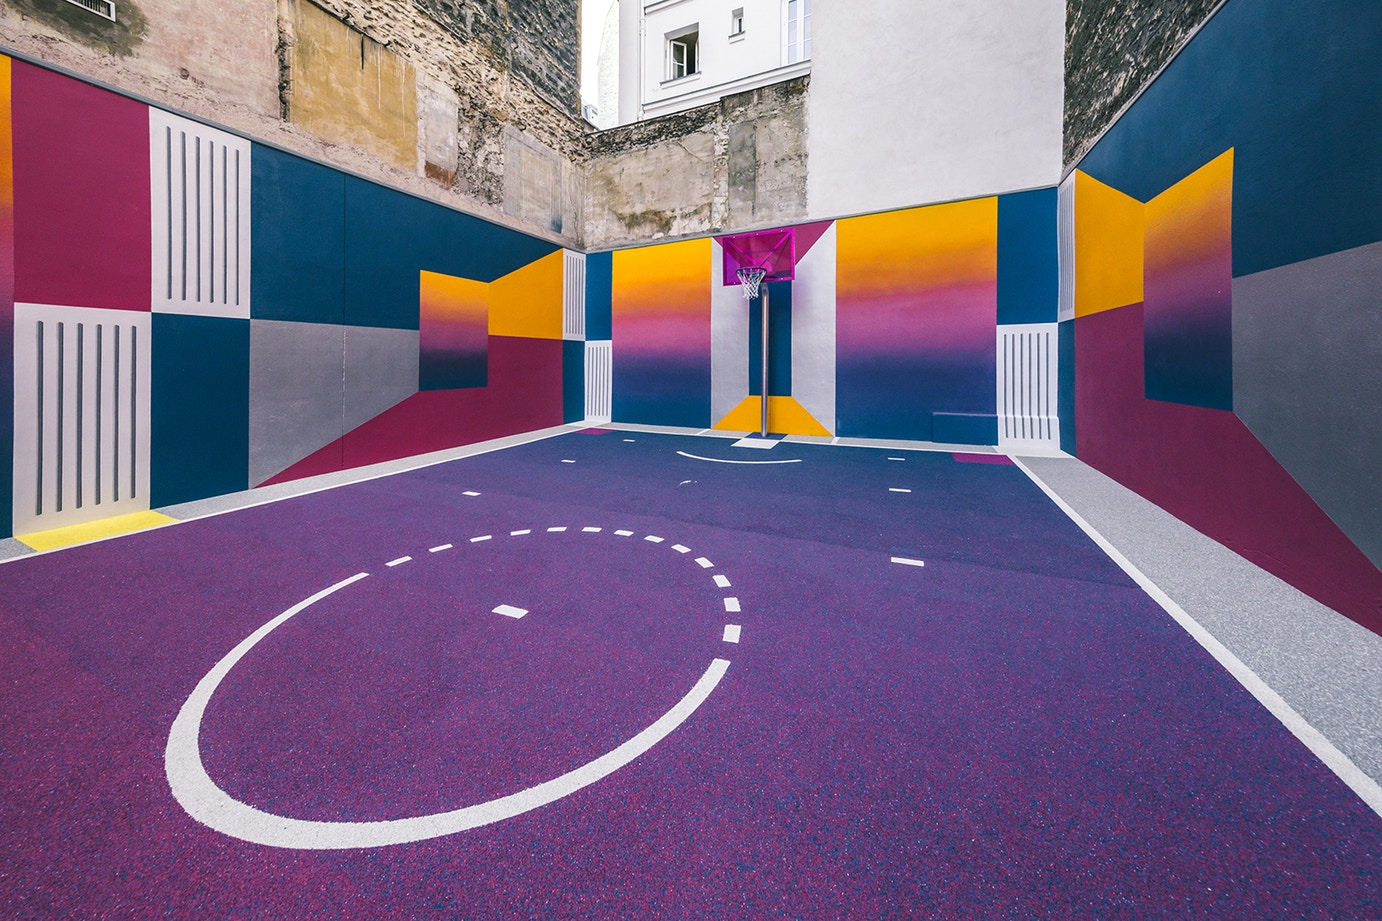 http-%2F%2Fhypebeast.com%2Fimage%2F2017%2F06%2Fpigalle-latest-basketball-court-design-eclectic-colorful-navy-purple-yellow-5.jpg